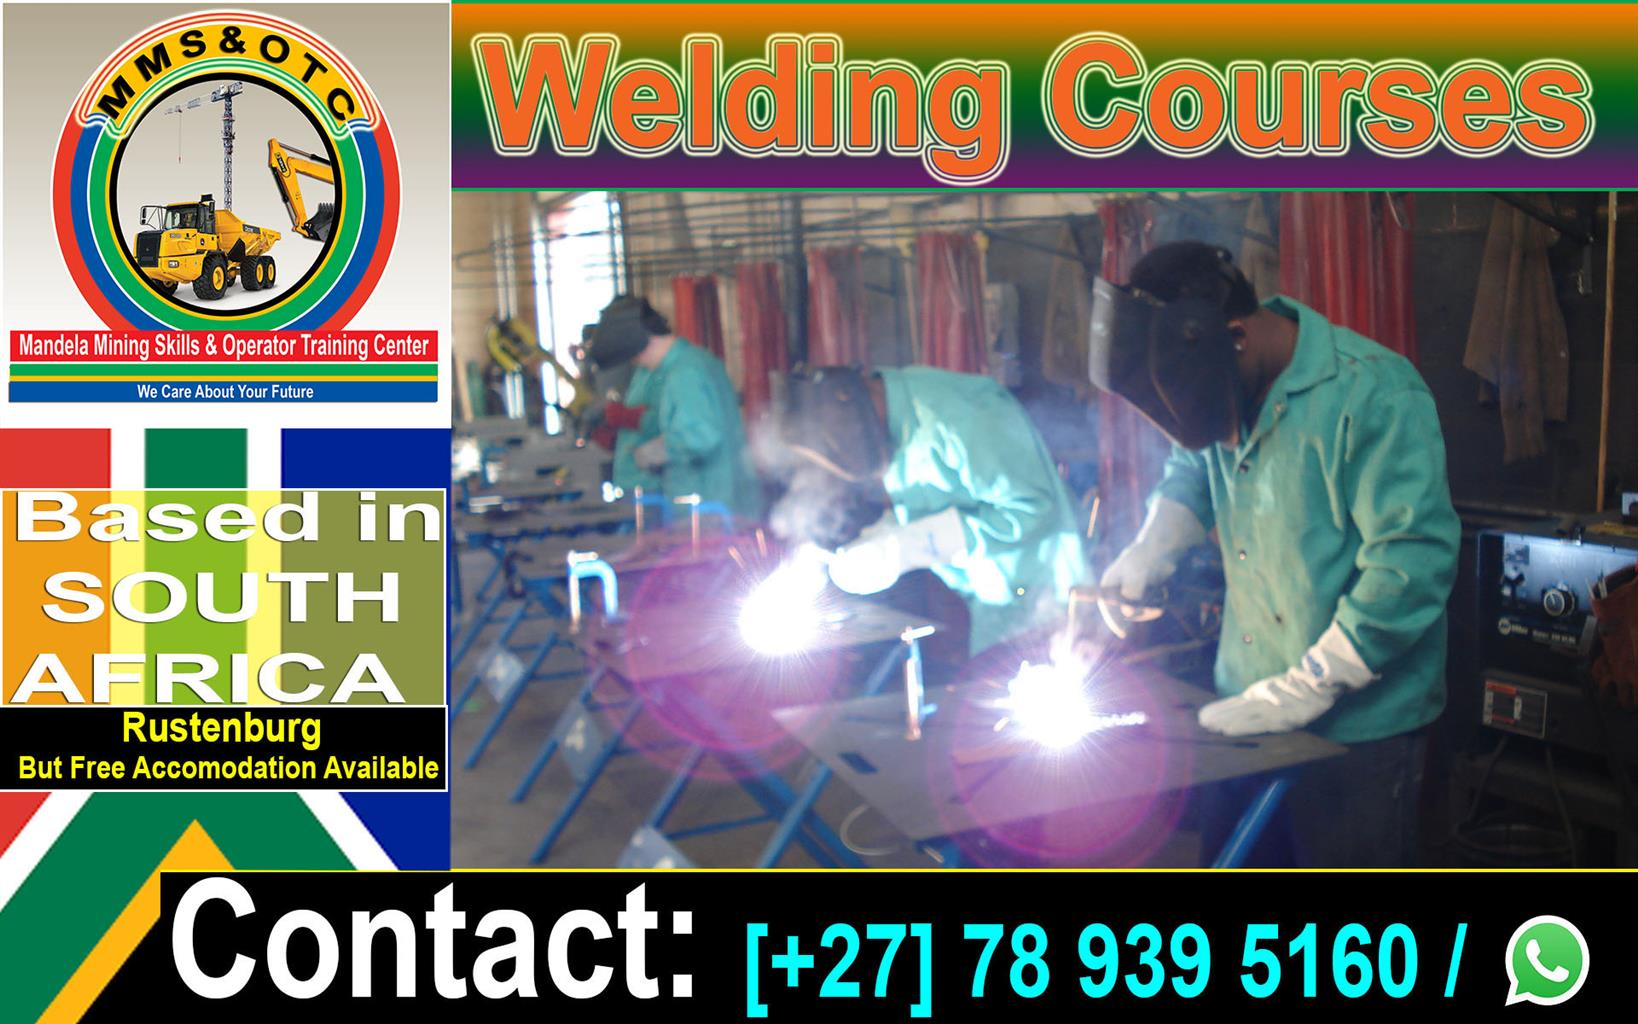 Skills Development Centre of Mining Courses in Lesotho